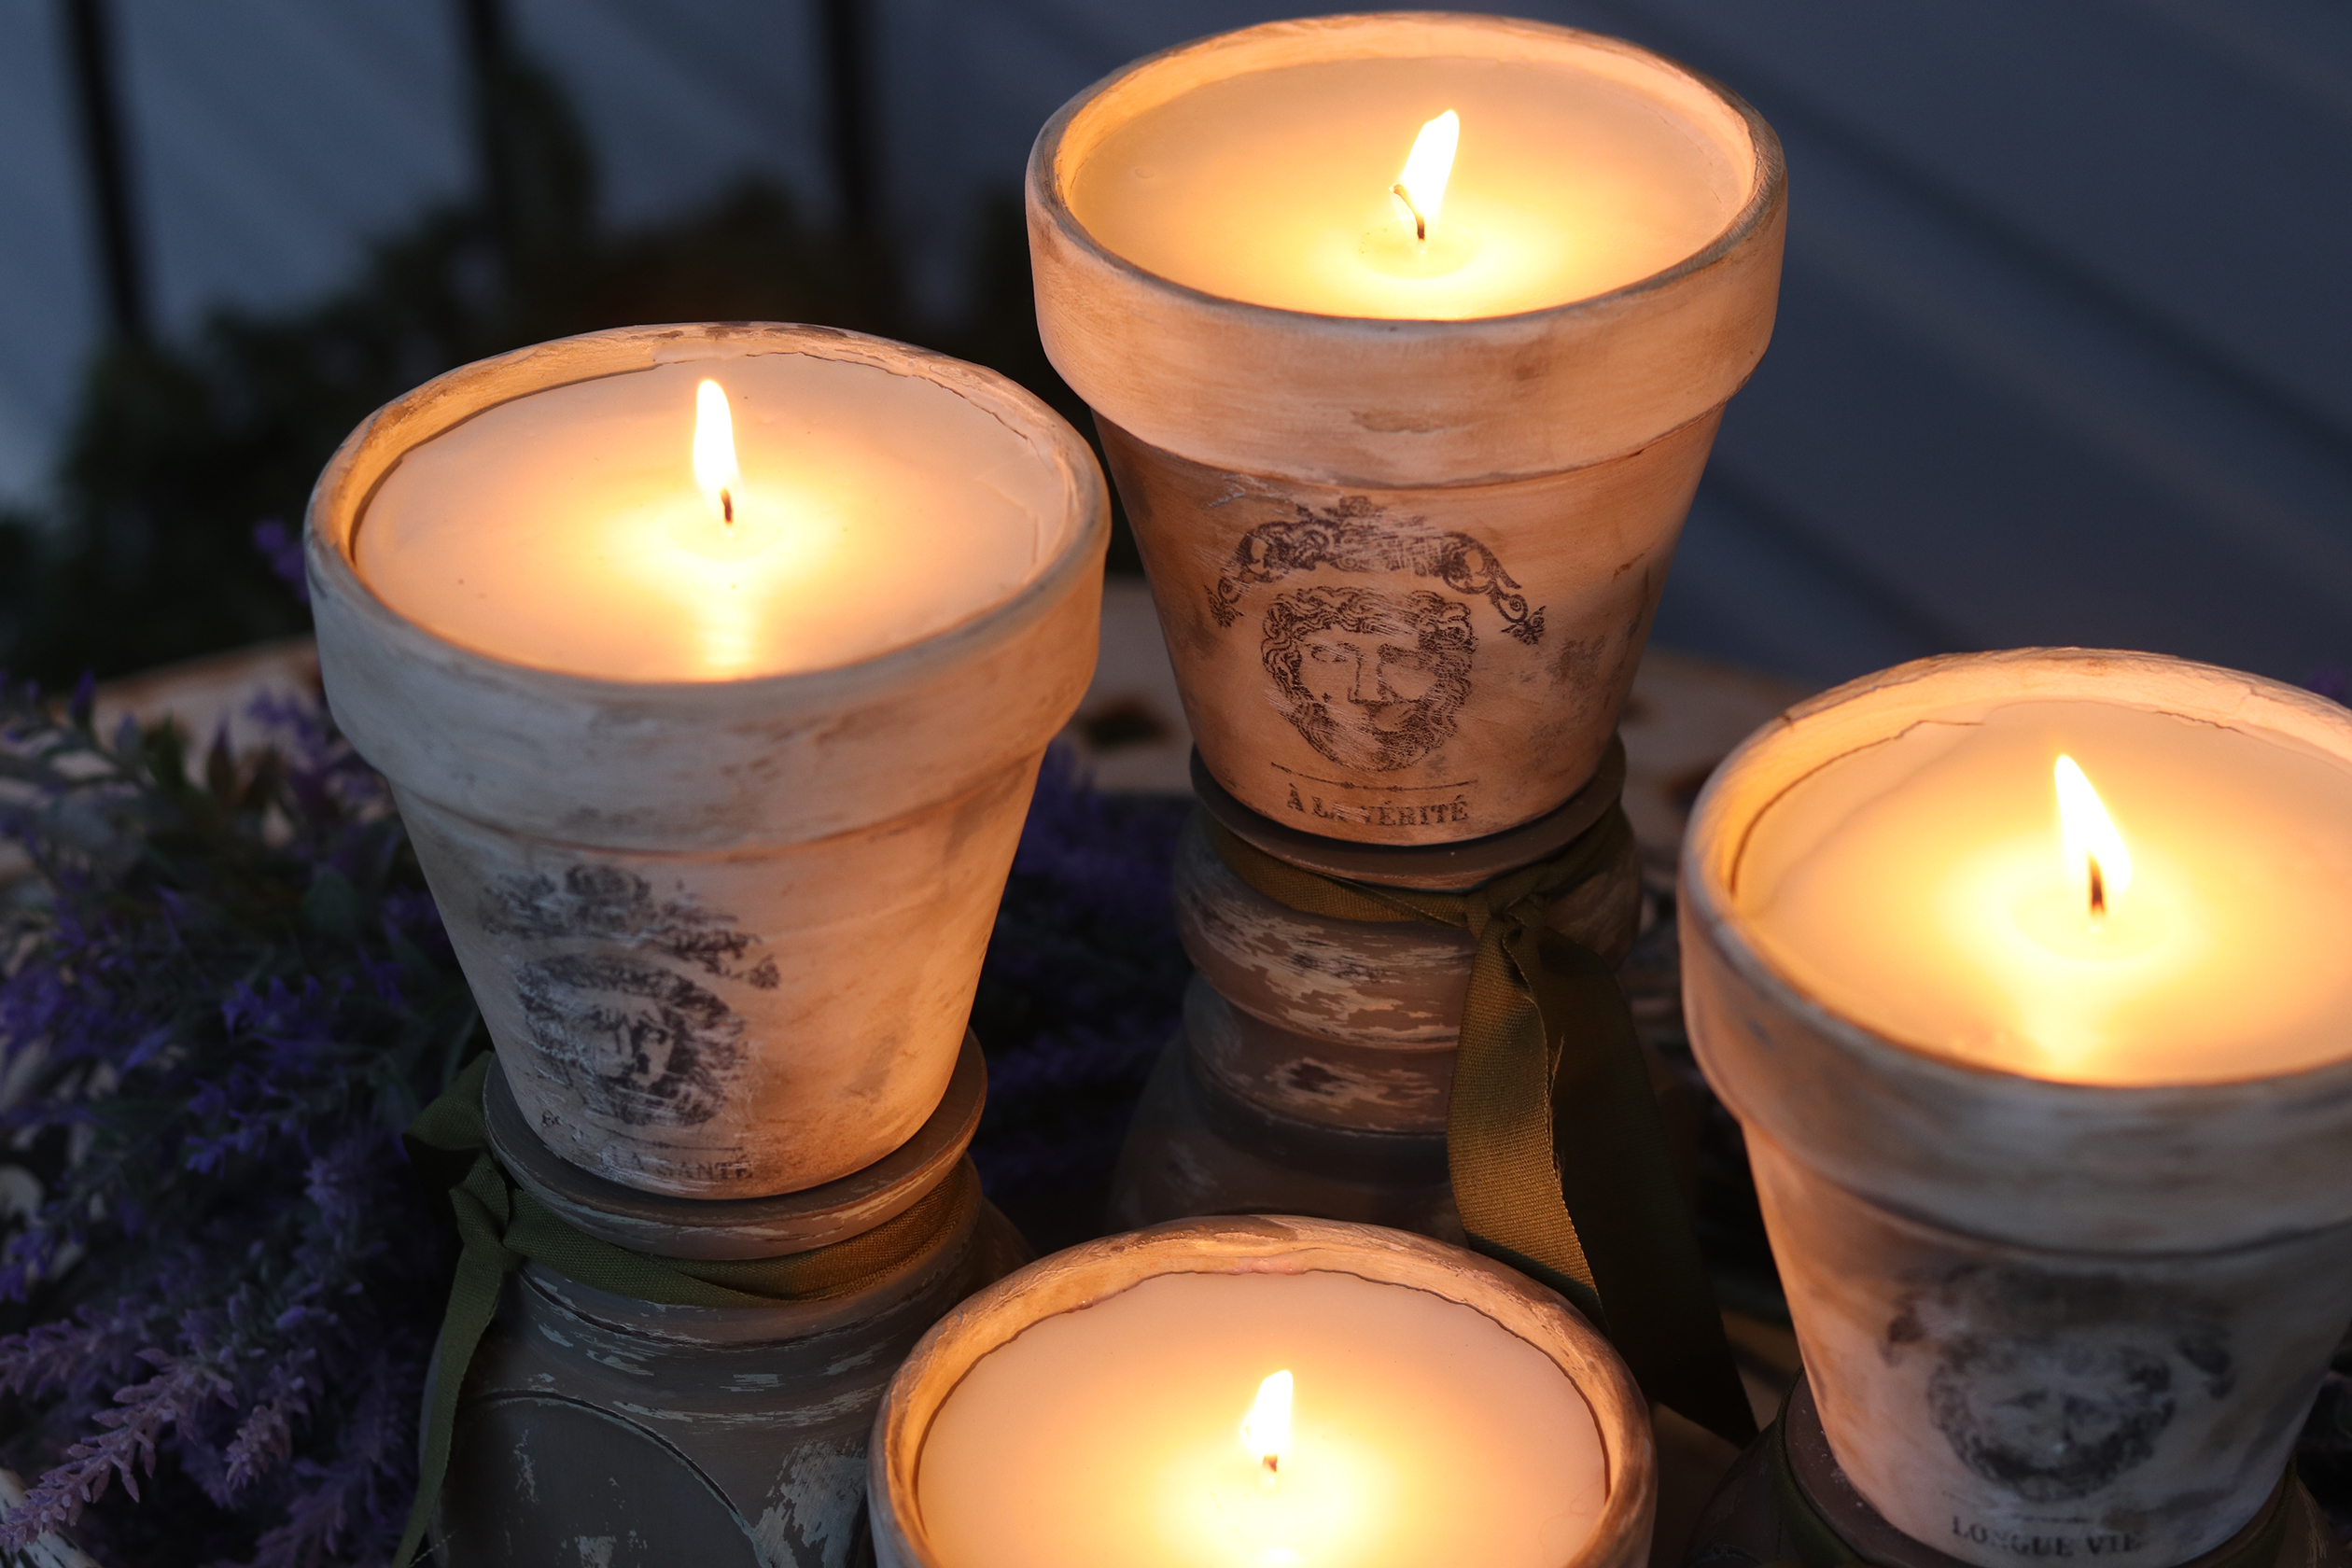 Boroughfare Home French Pot Candle DIY Lit for Evening